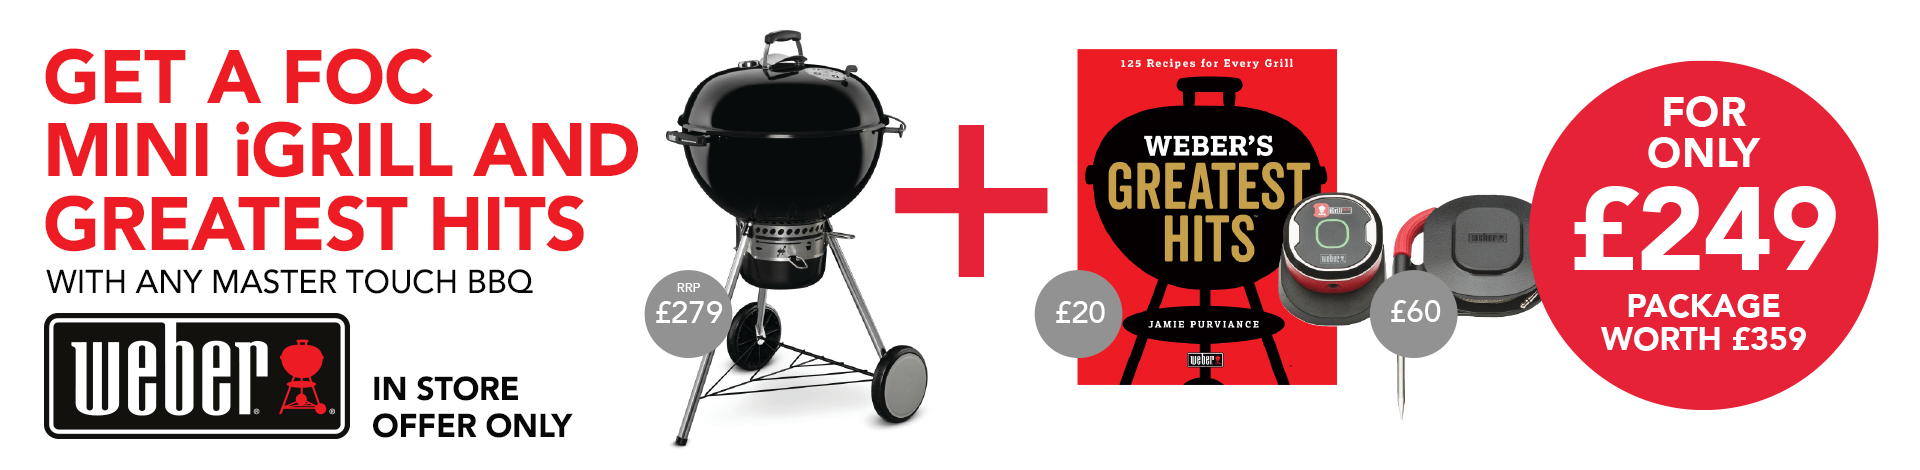 Weber iGrill Greatest Hits Offer